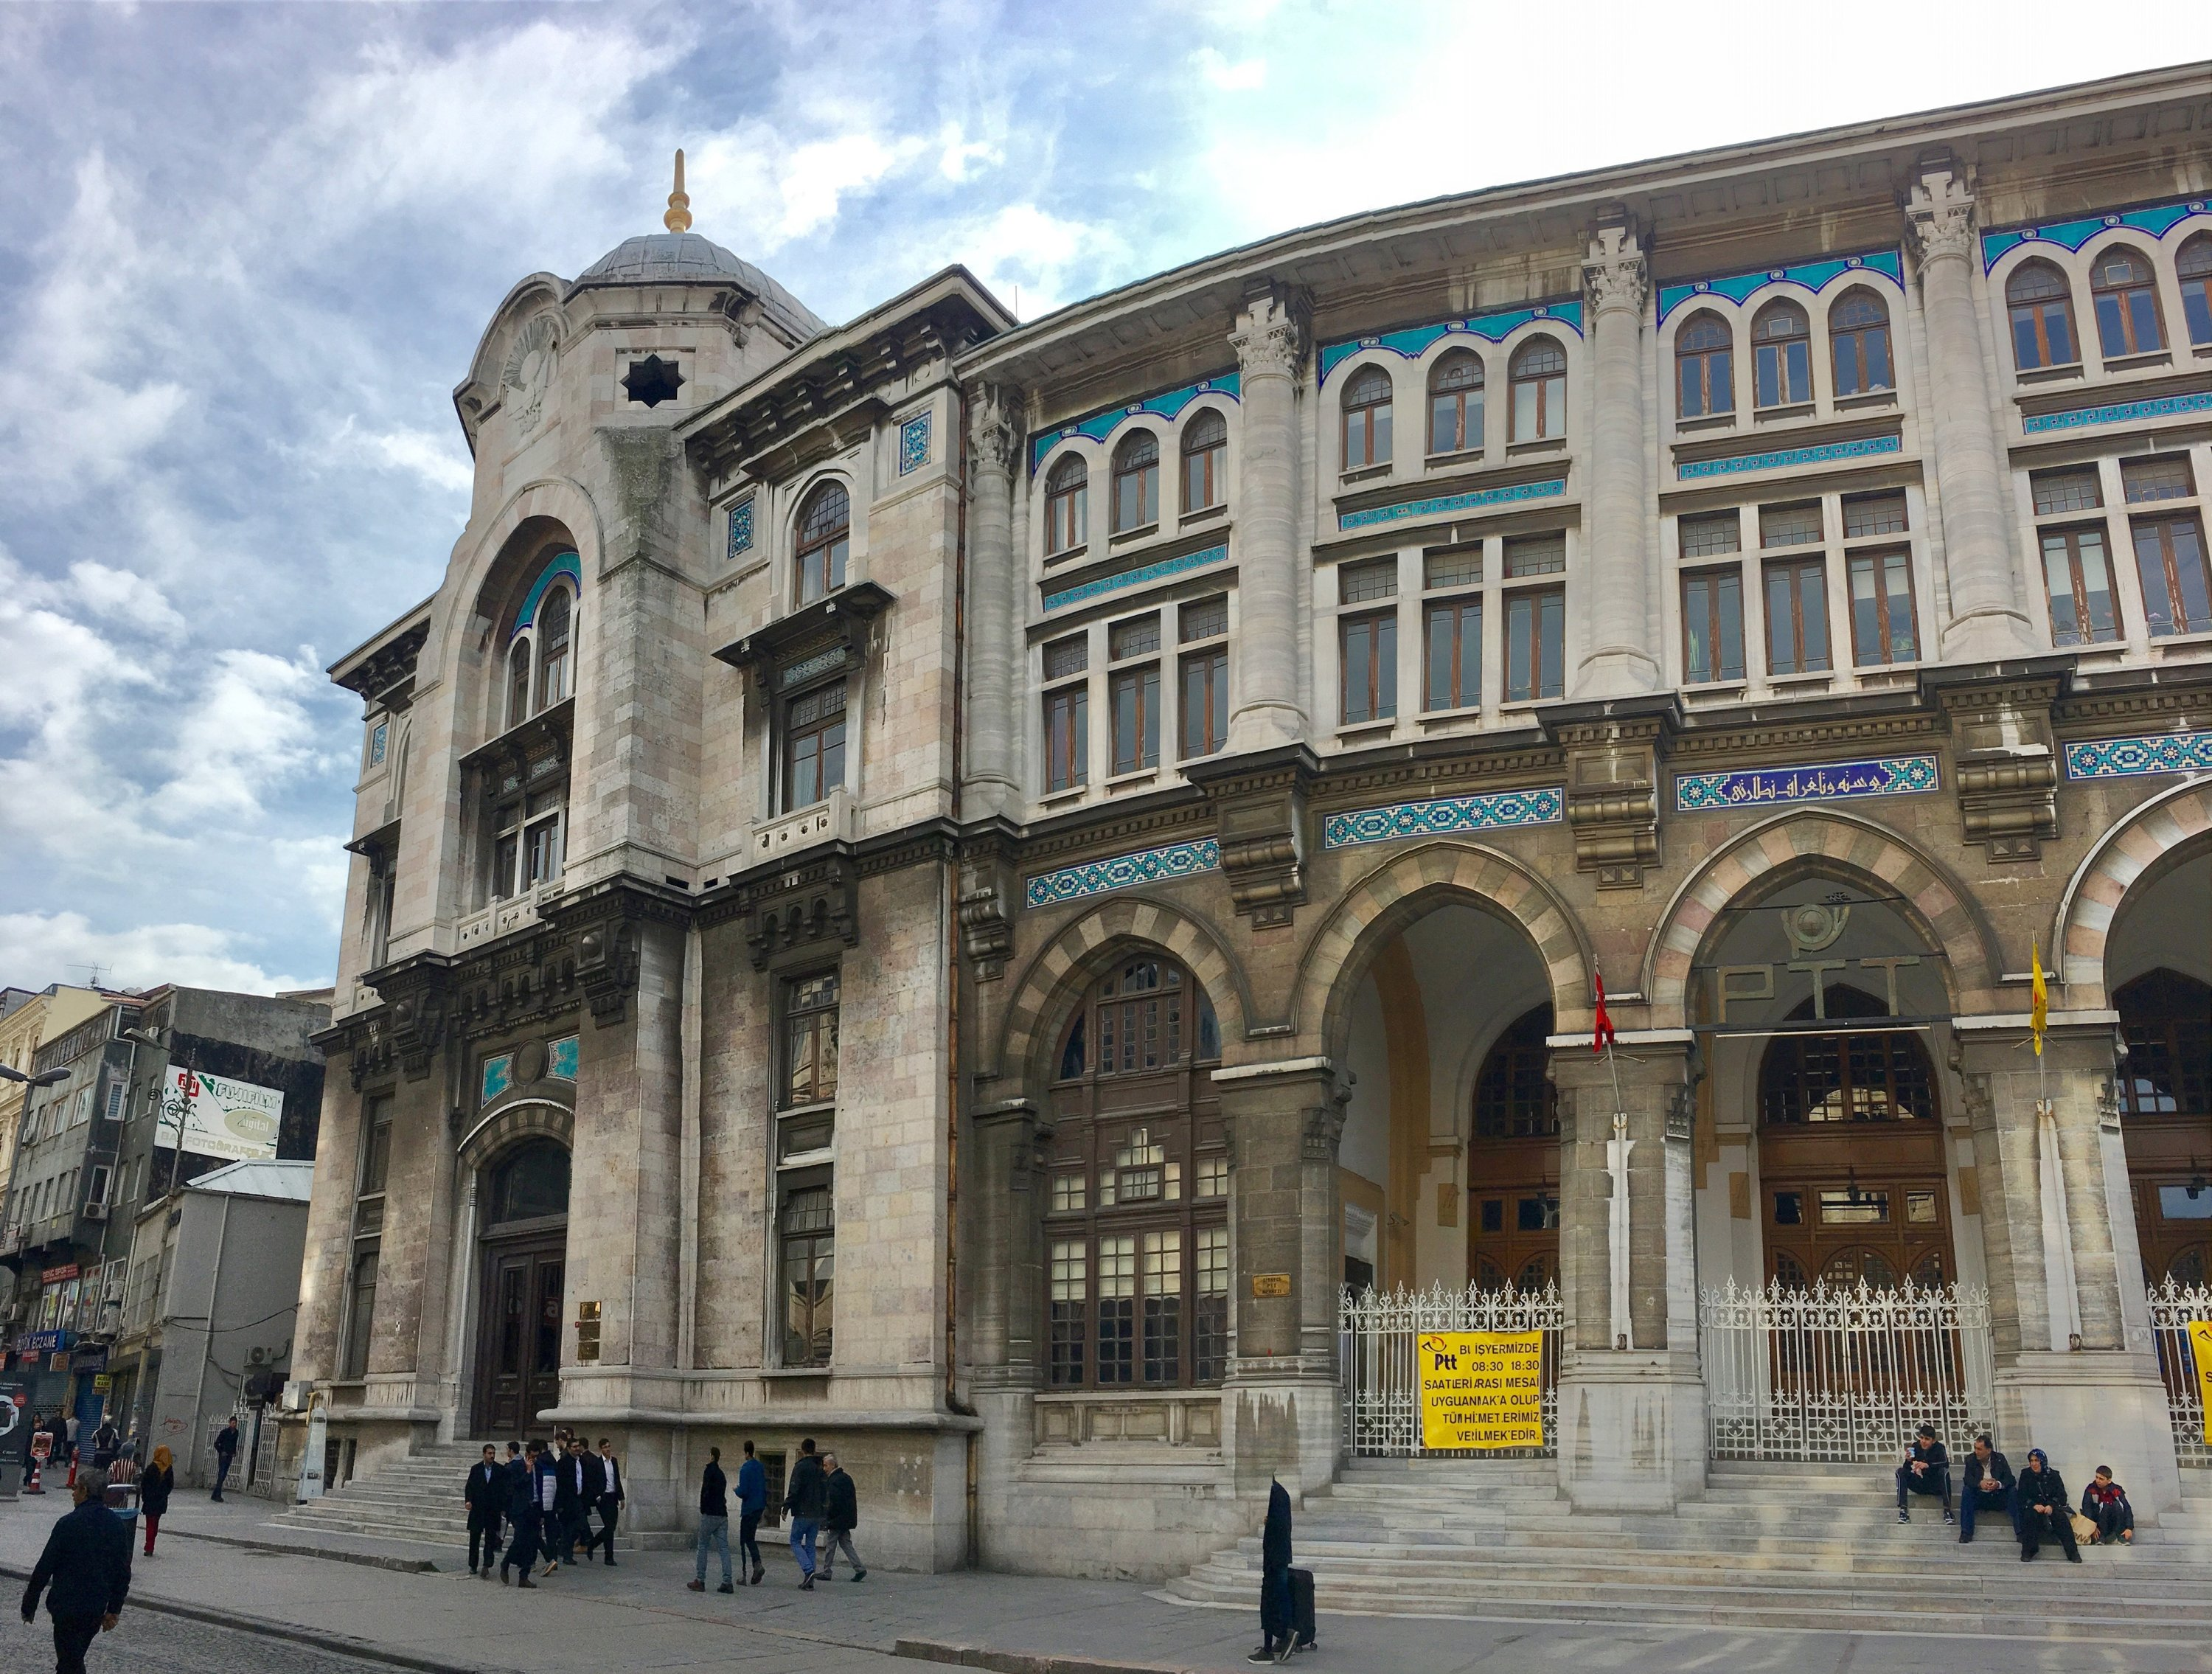 The Istanbul Grand Post Office is an office building for postal services located in the Sirkeci quarter of Fatih district in Istanbul, Turkey, Feb. 19, 2017. (Photo by Shutterstock)